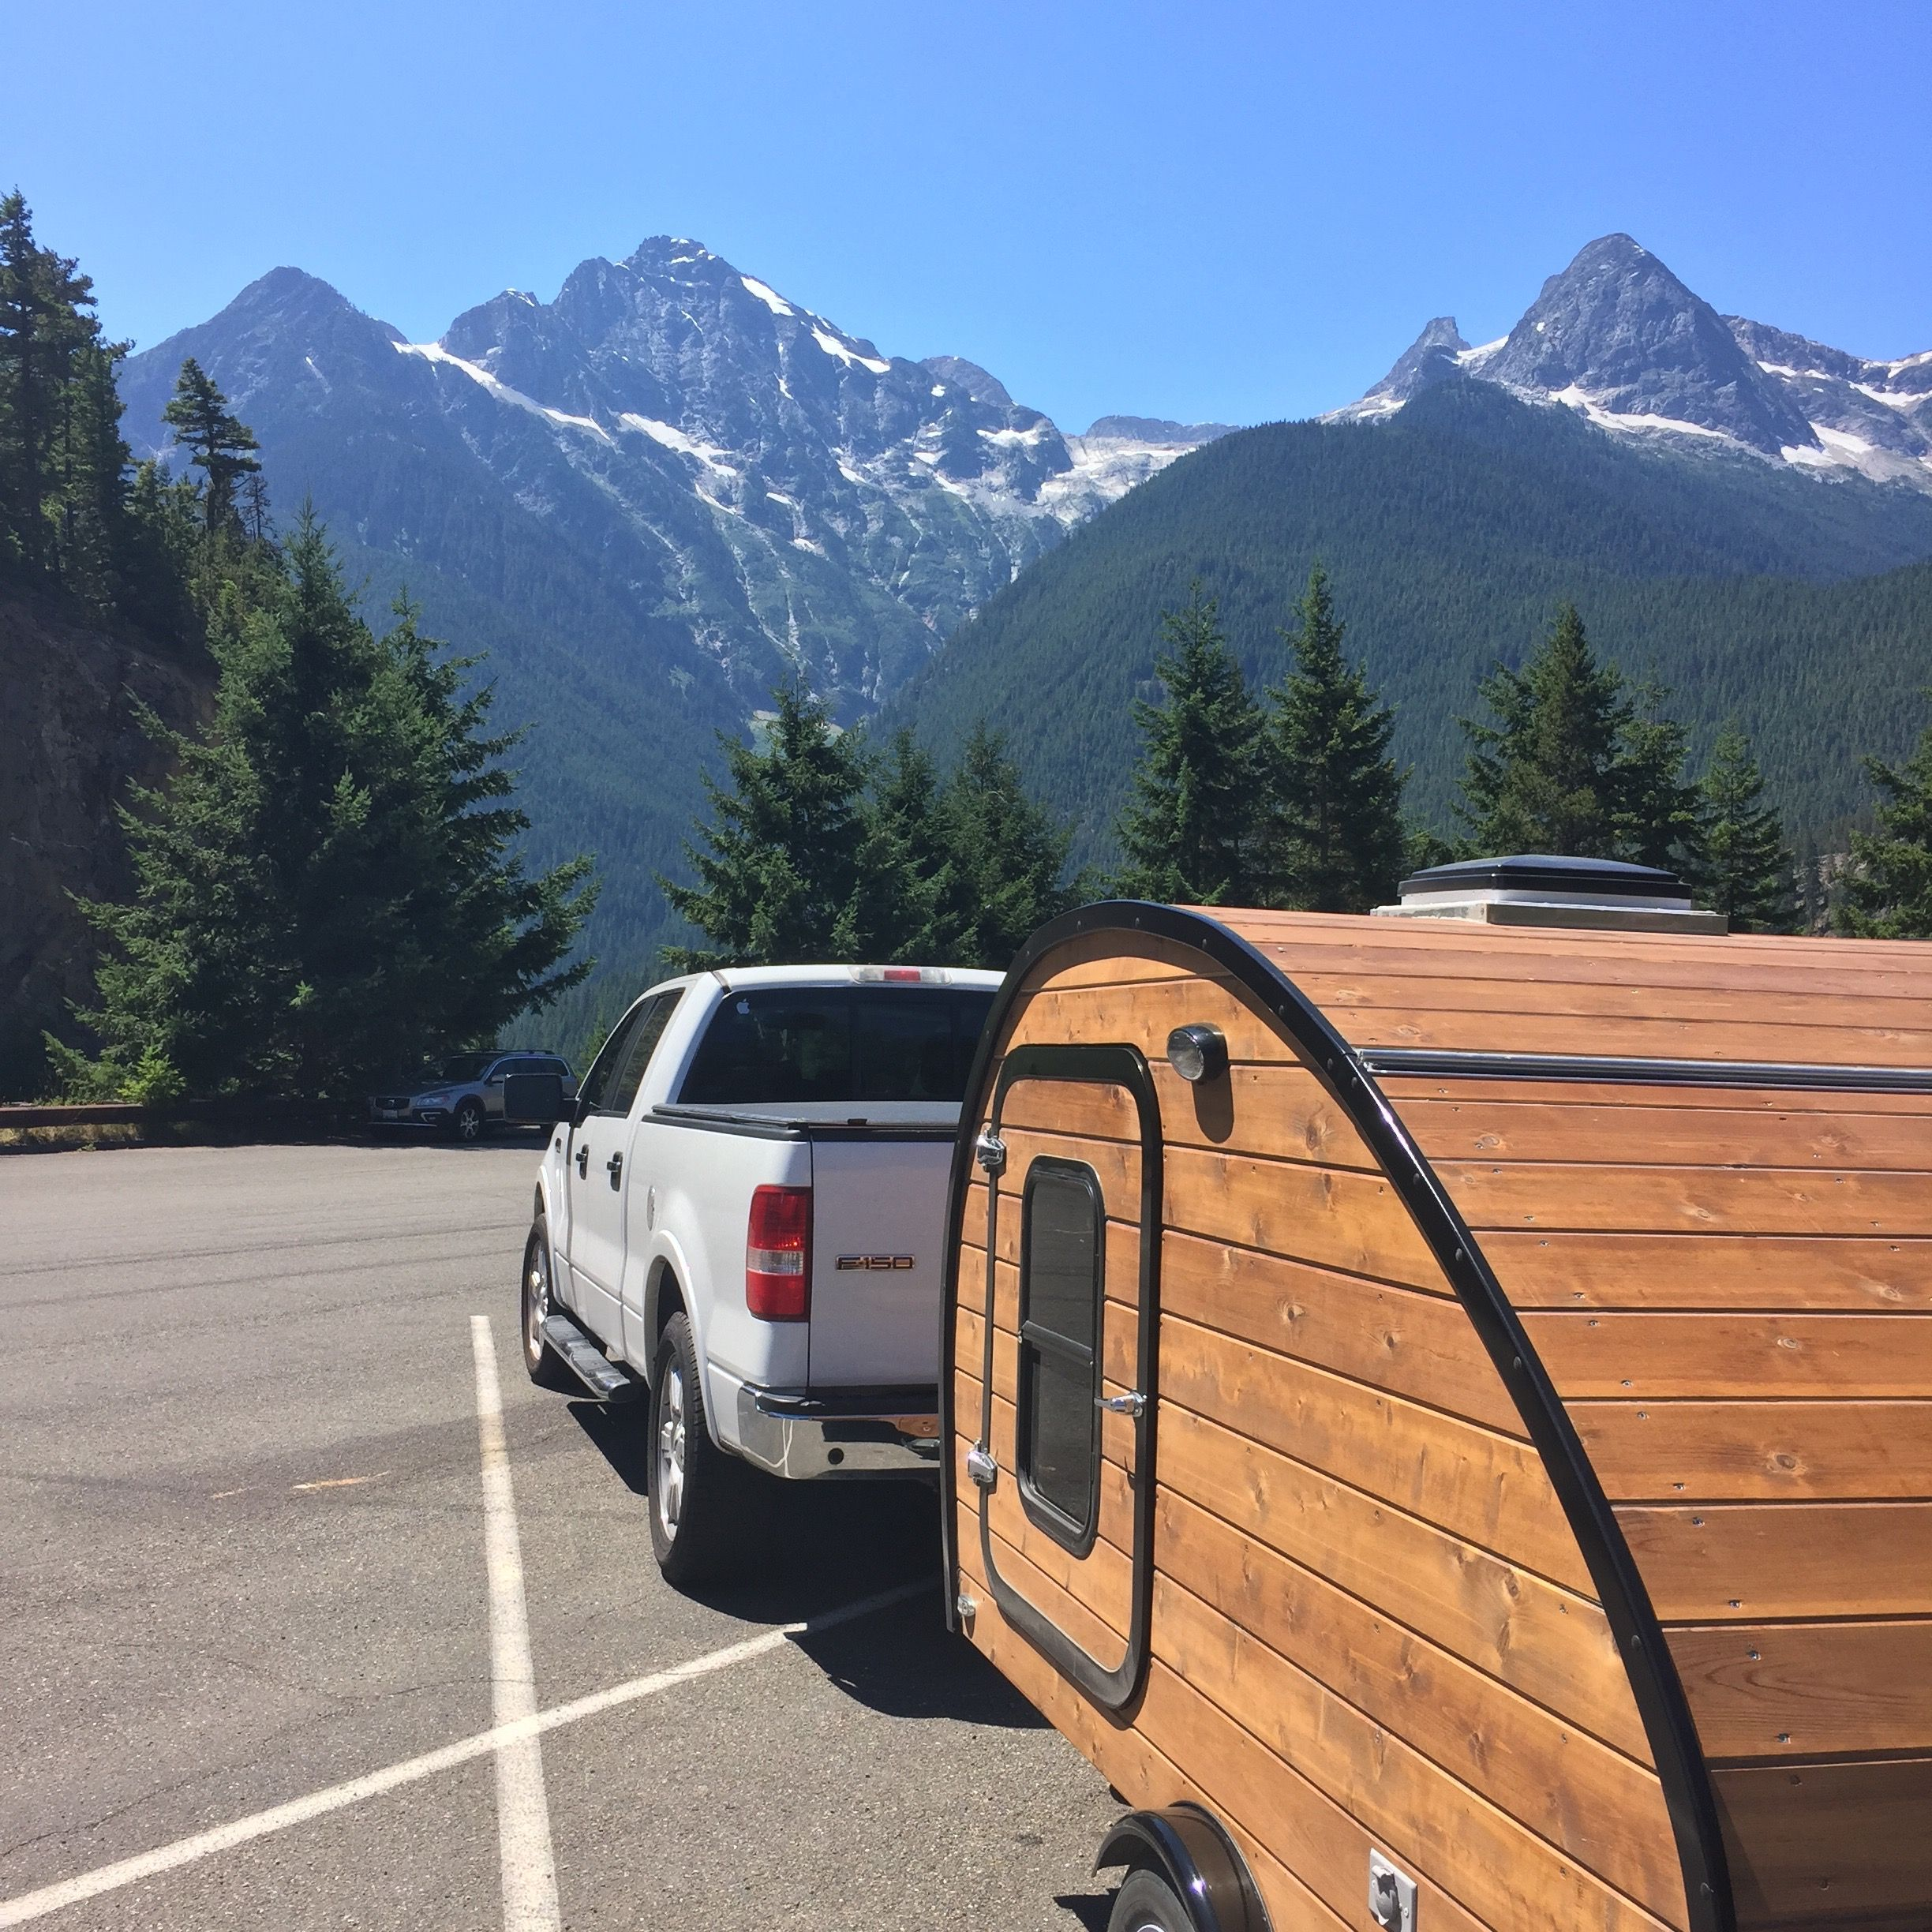 My first trip on Highway 20 from Winthrop to Burlington.  This was the most BEAUTIFUL drive...a great way to end the inaugural trip with my teardrop camper.